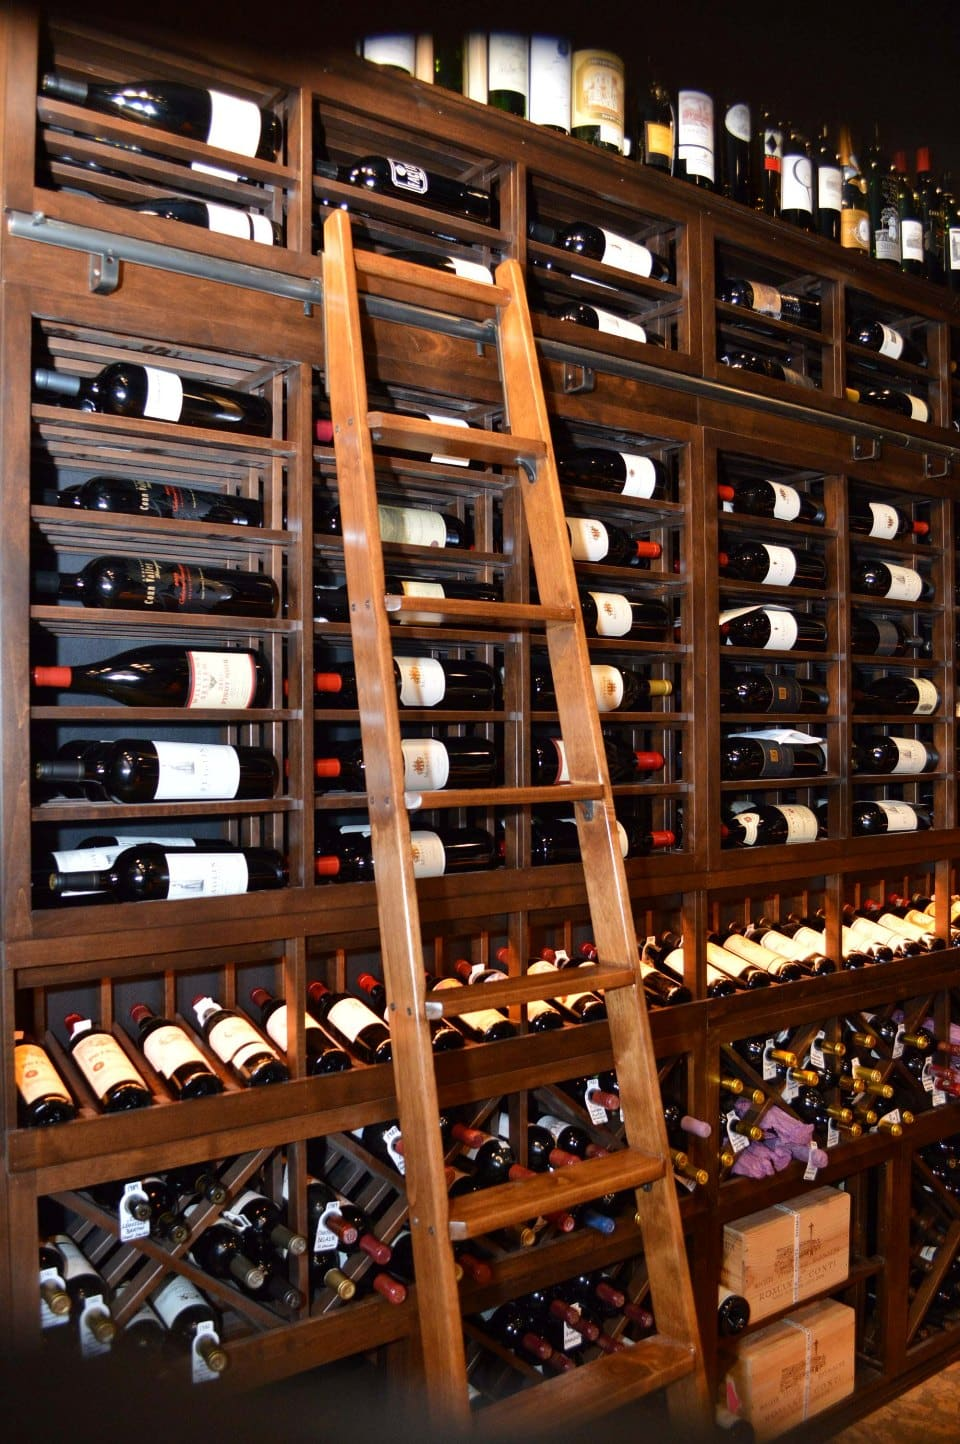 Wine Cellar Naples Florida Published June 25 2018 At 960 1444 In